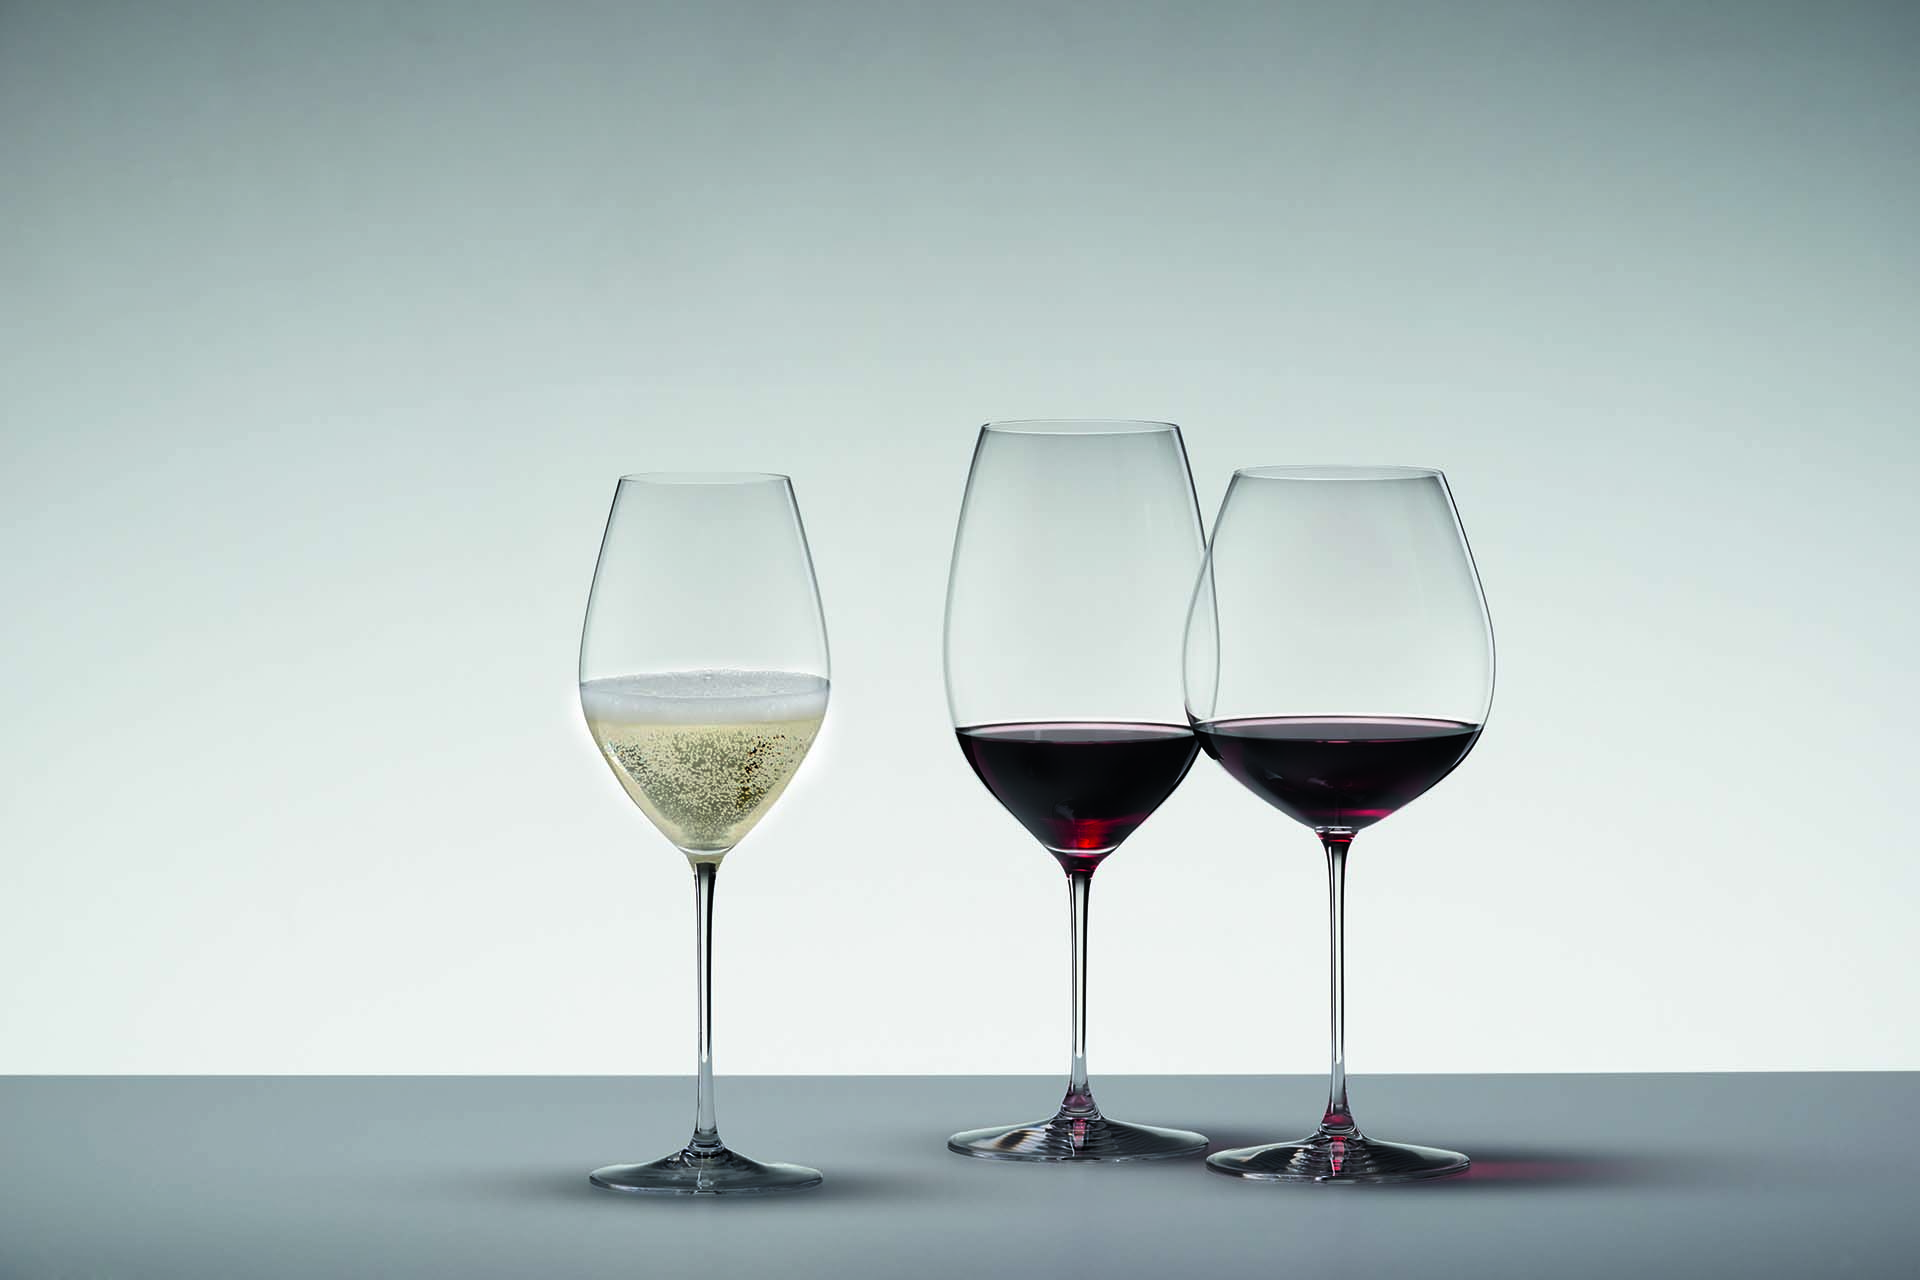 Riedel's Veritas Collection, left to right: Champage, New World Shiraz, and Old World Pinot Noir glasses / Photo courtesy Riedel